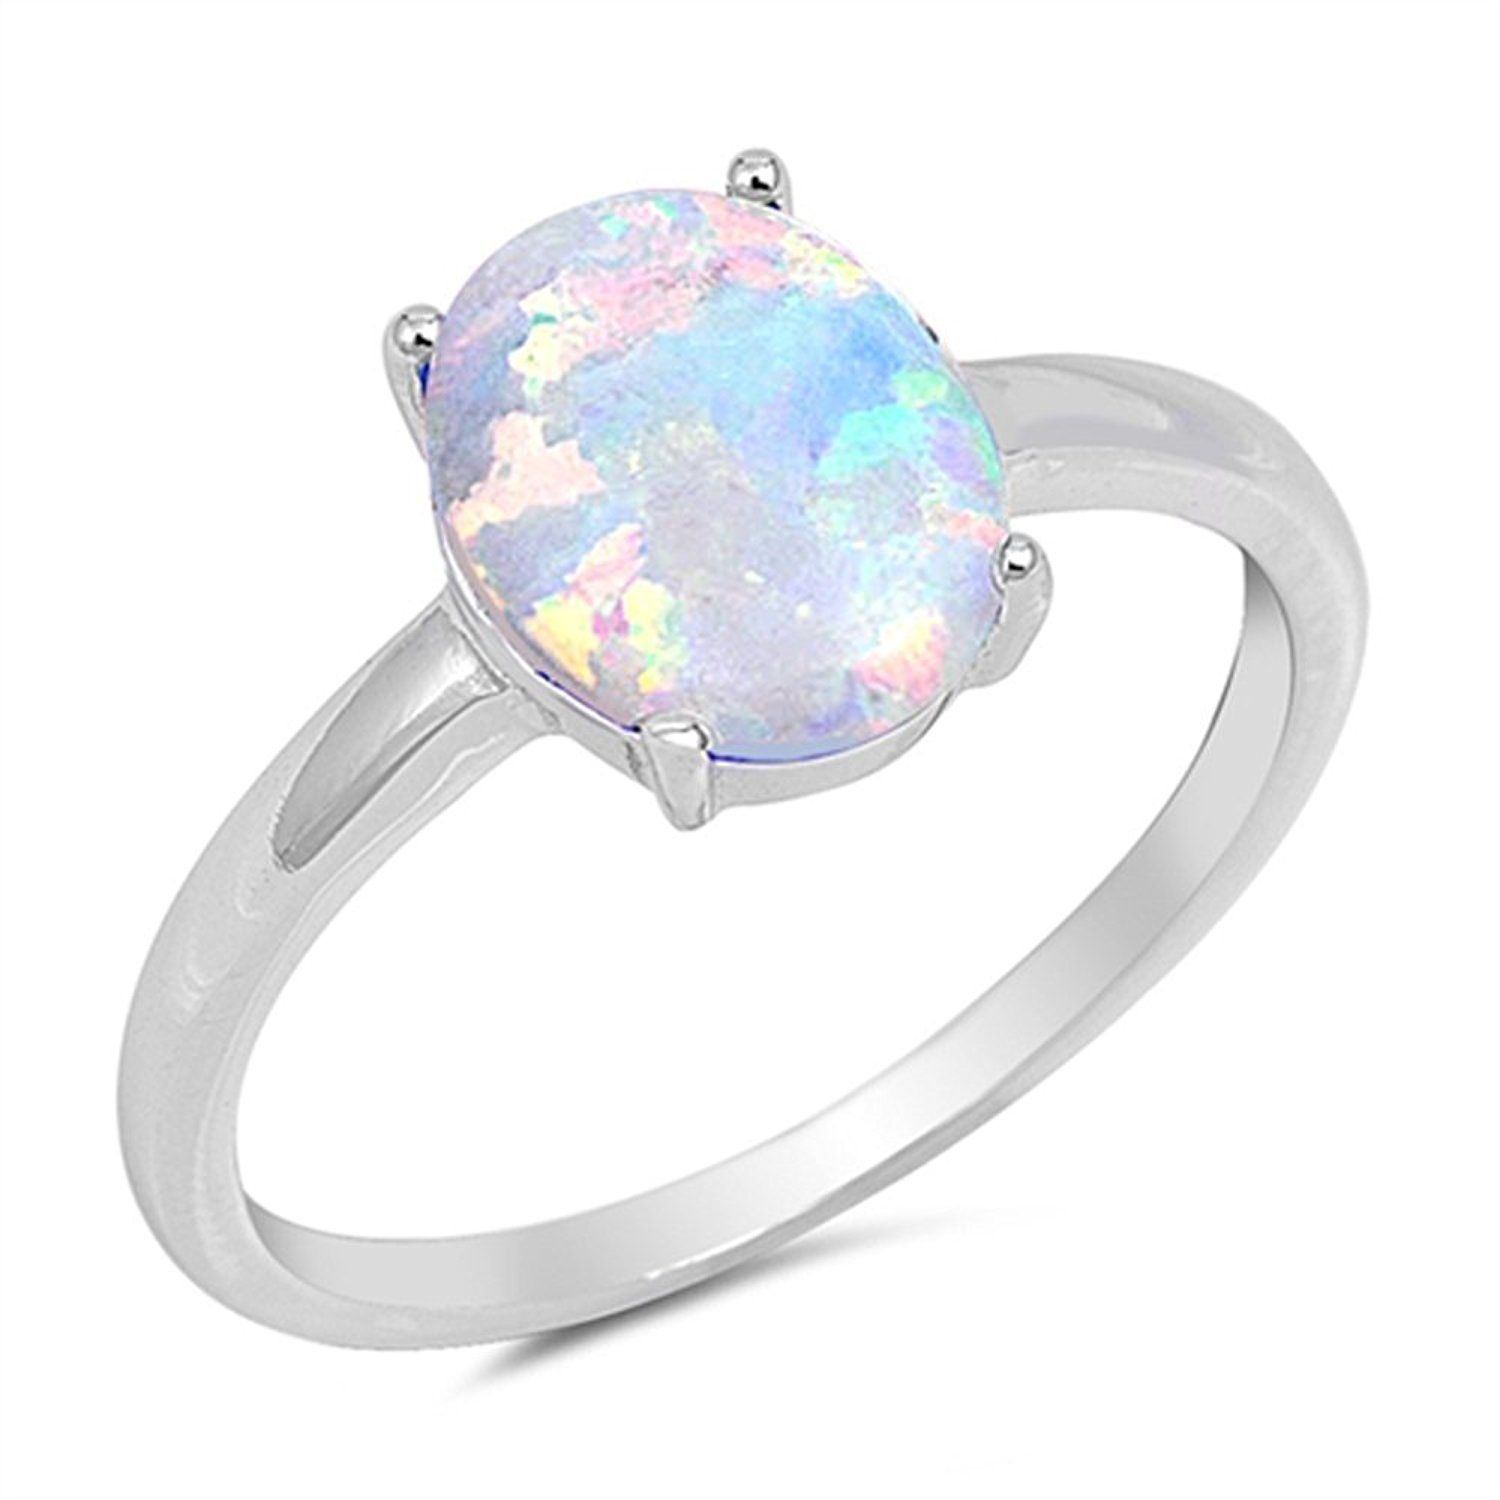 Light Blue Lab Opal White CZ Cluster Ring .925 Sterling Silver Band Sizes 4-12